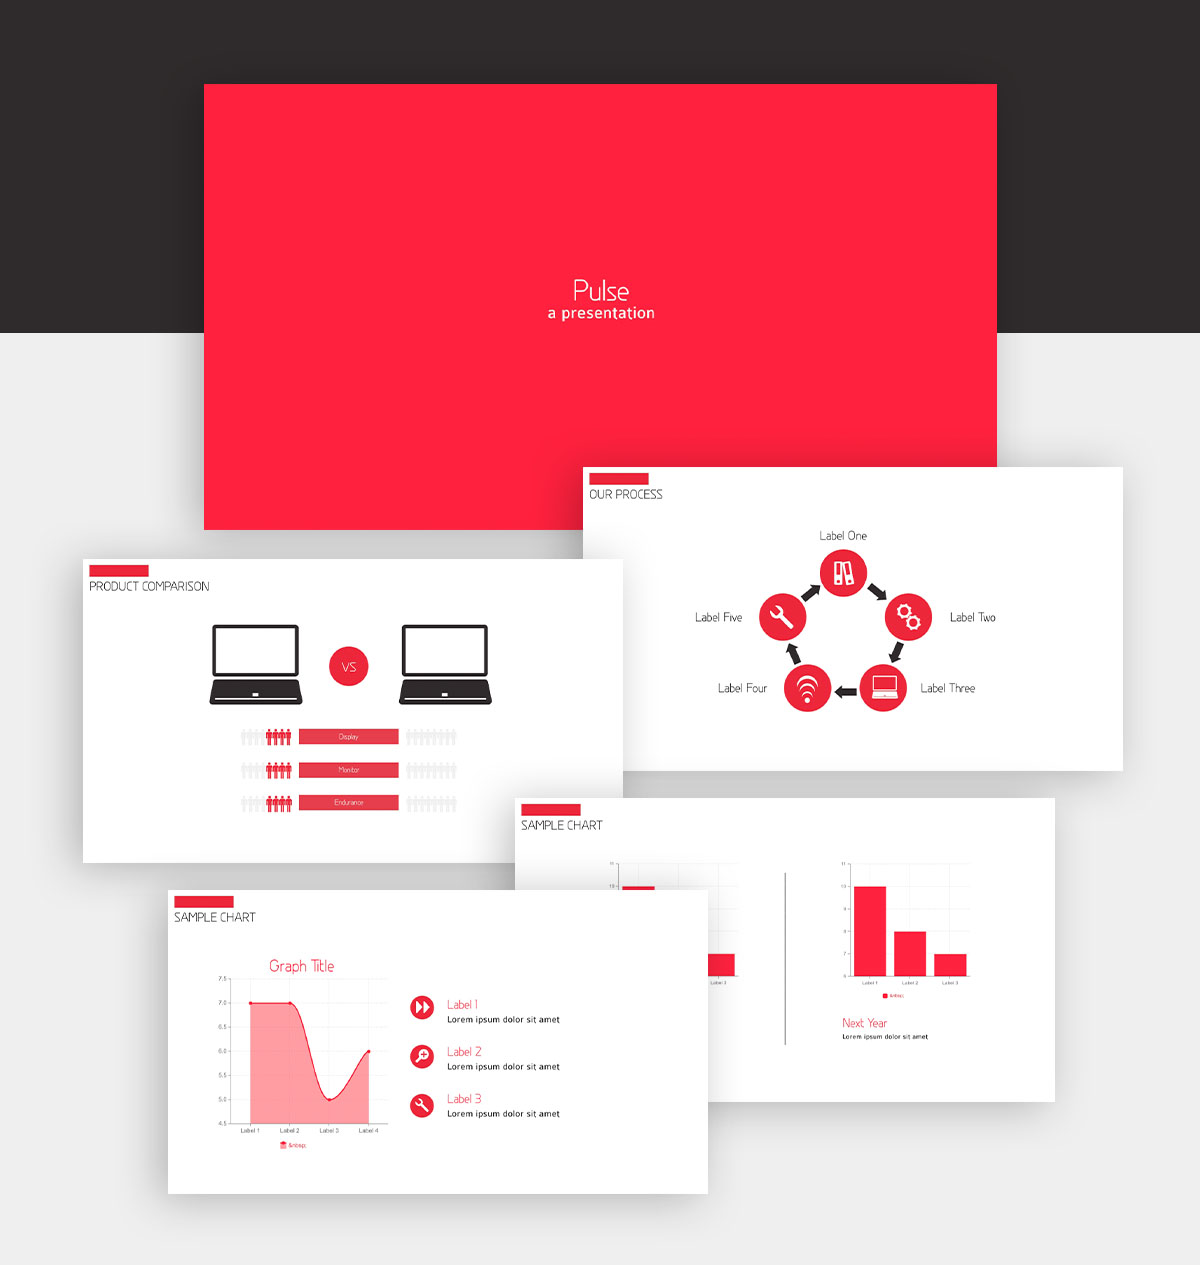 powerpoint infographic - basic presentation template